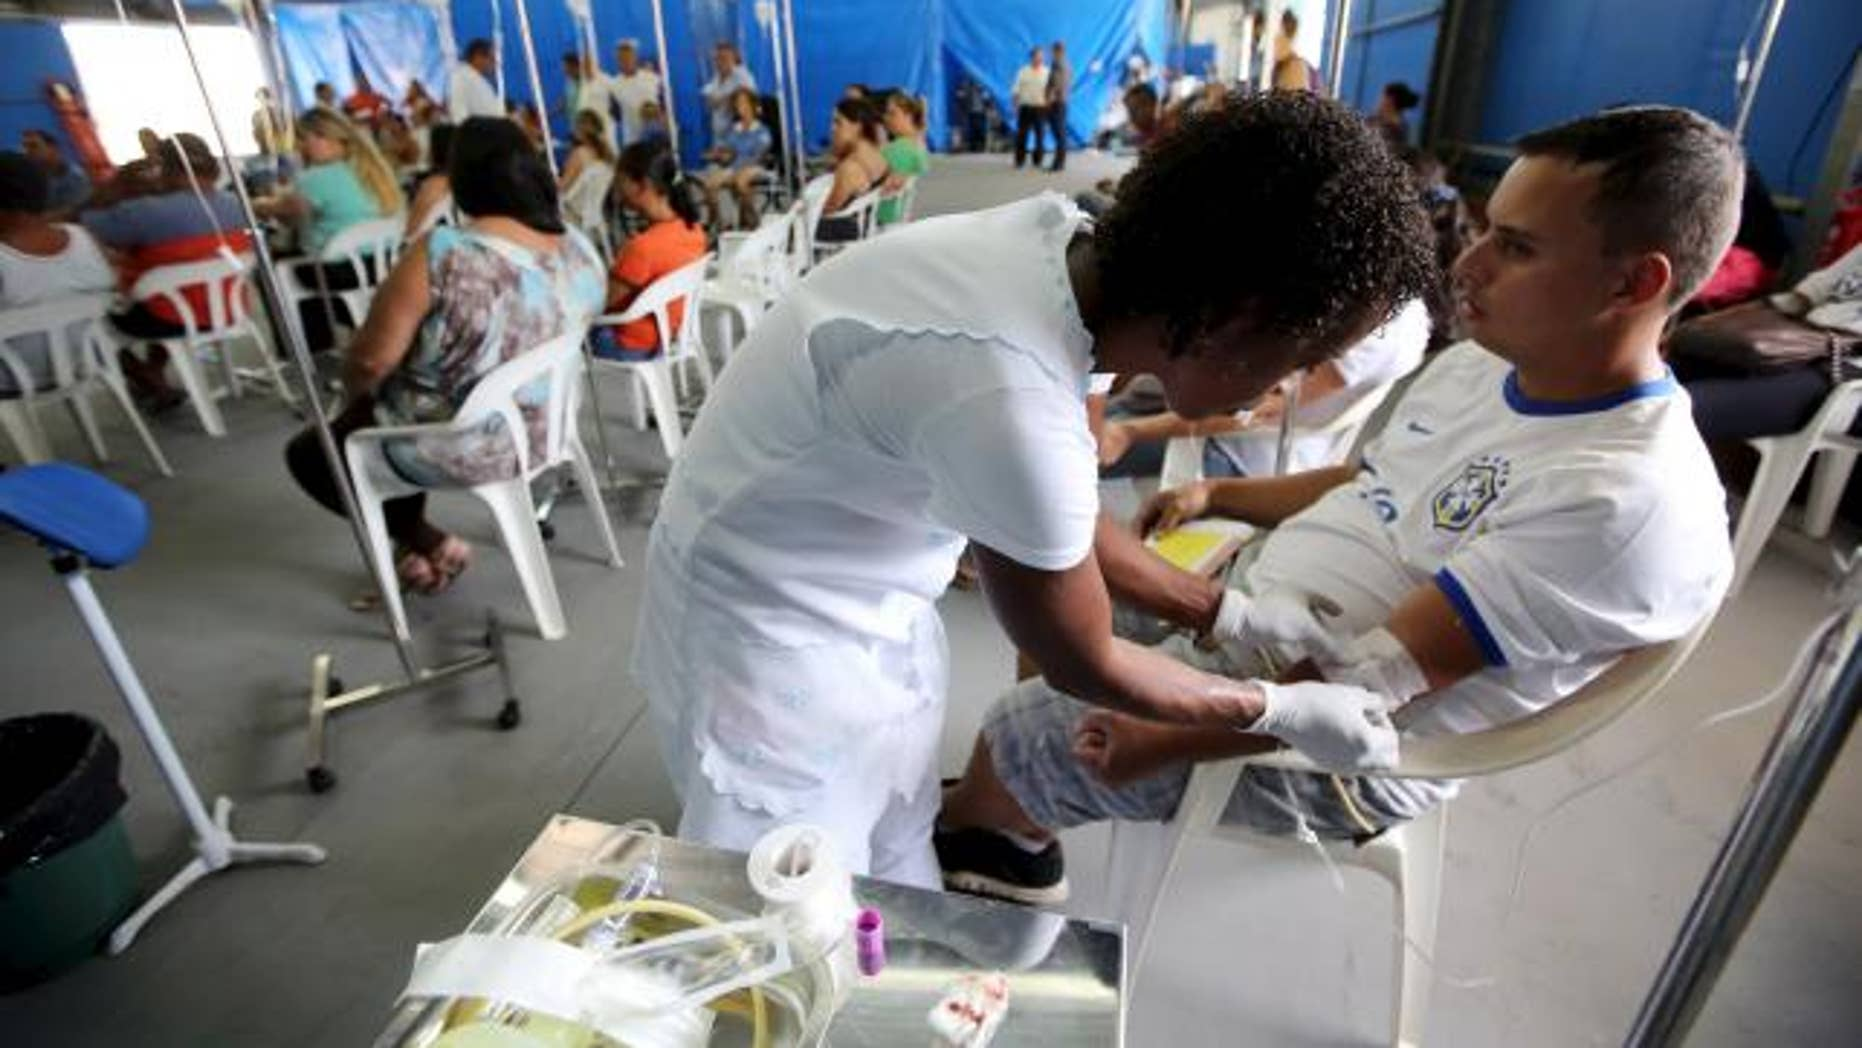 March 5, 2015: A patient is administered drips as he awaits the results of his dengue examination, in a medical tent in Rio Claro, Brazil.